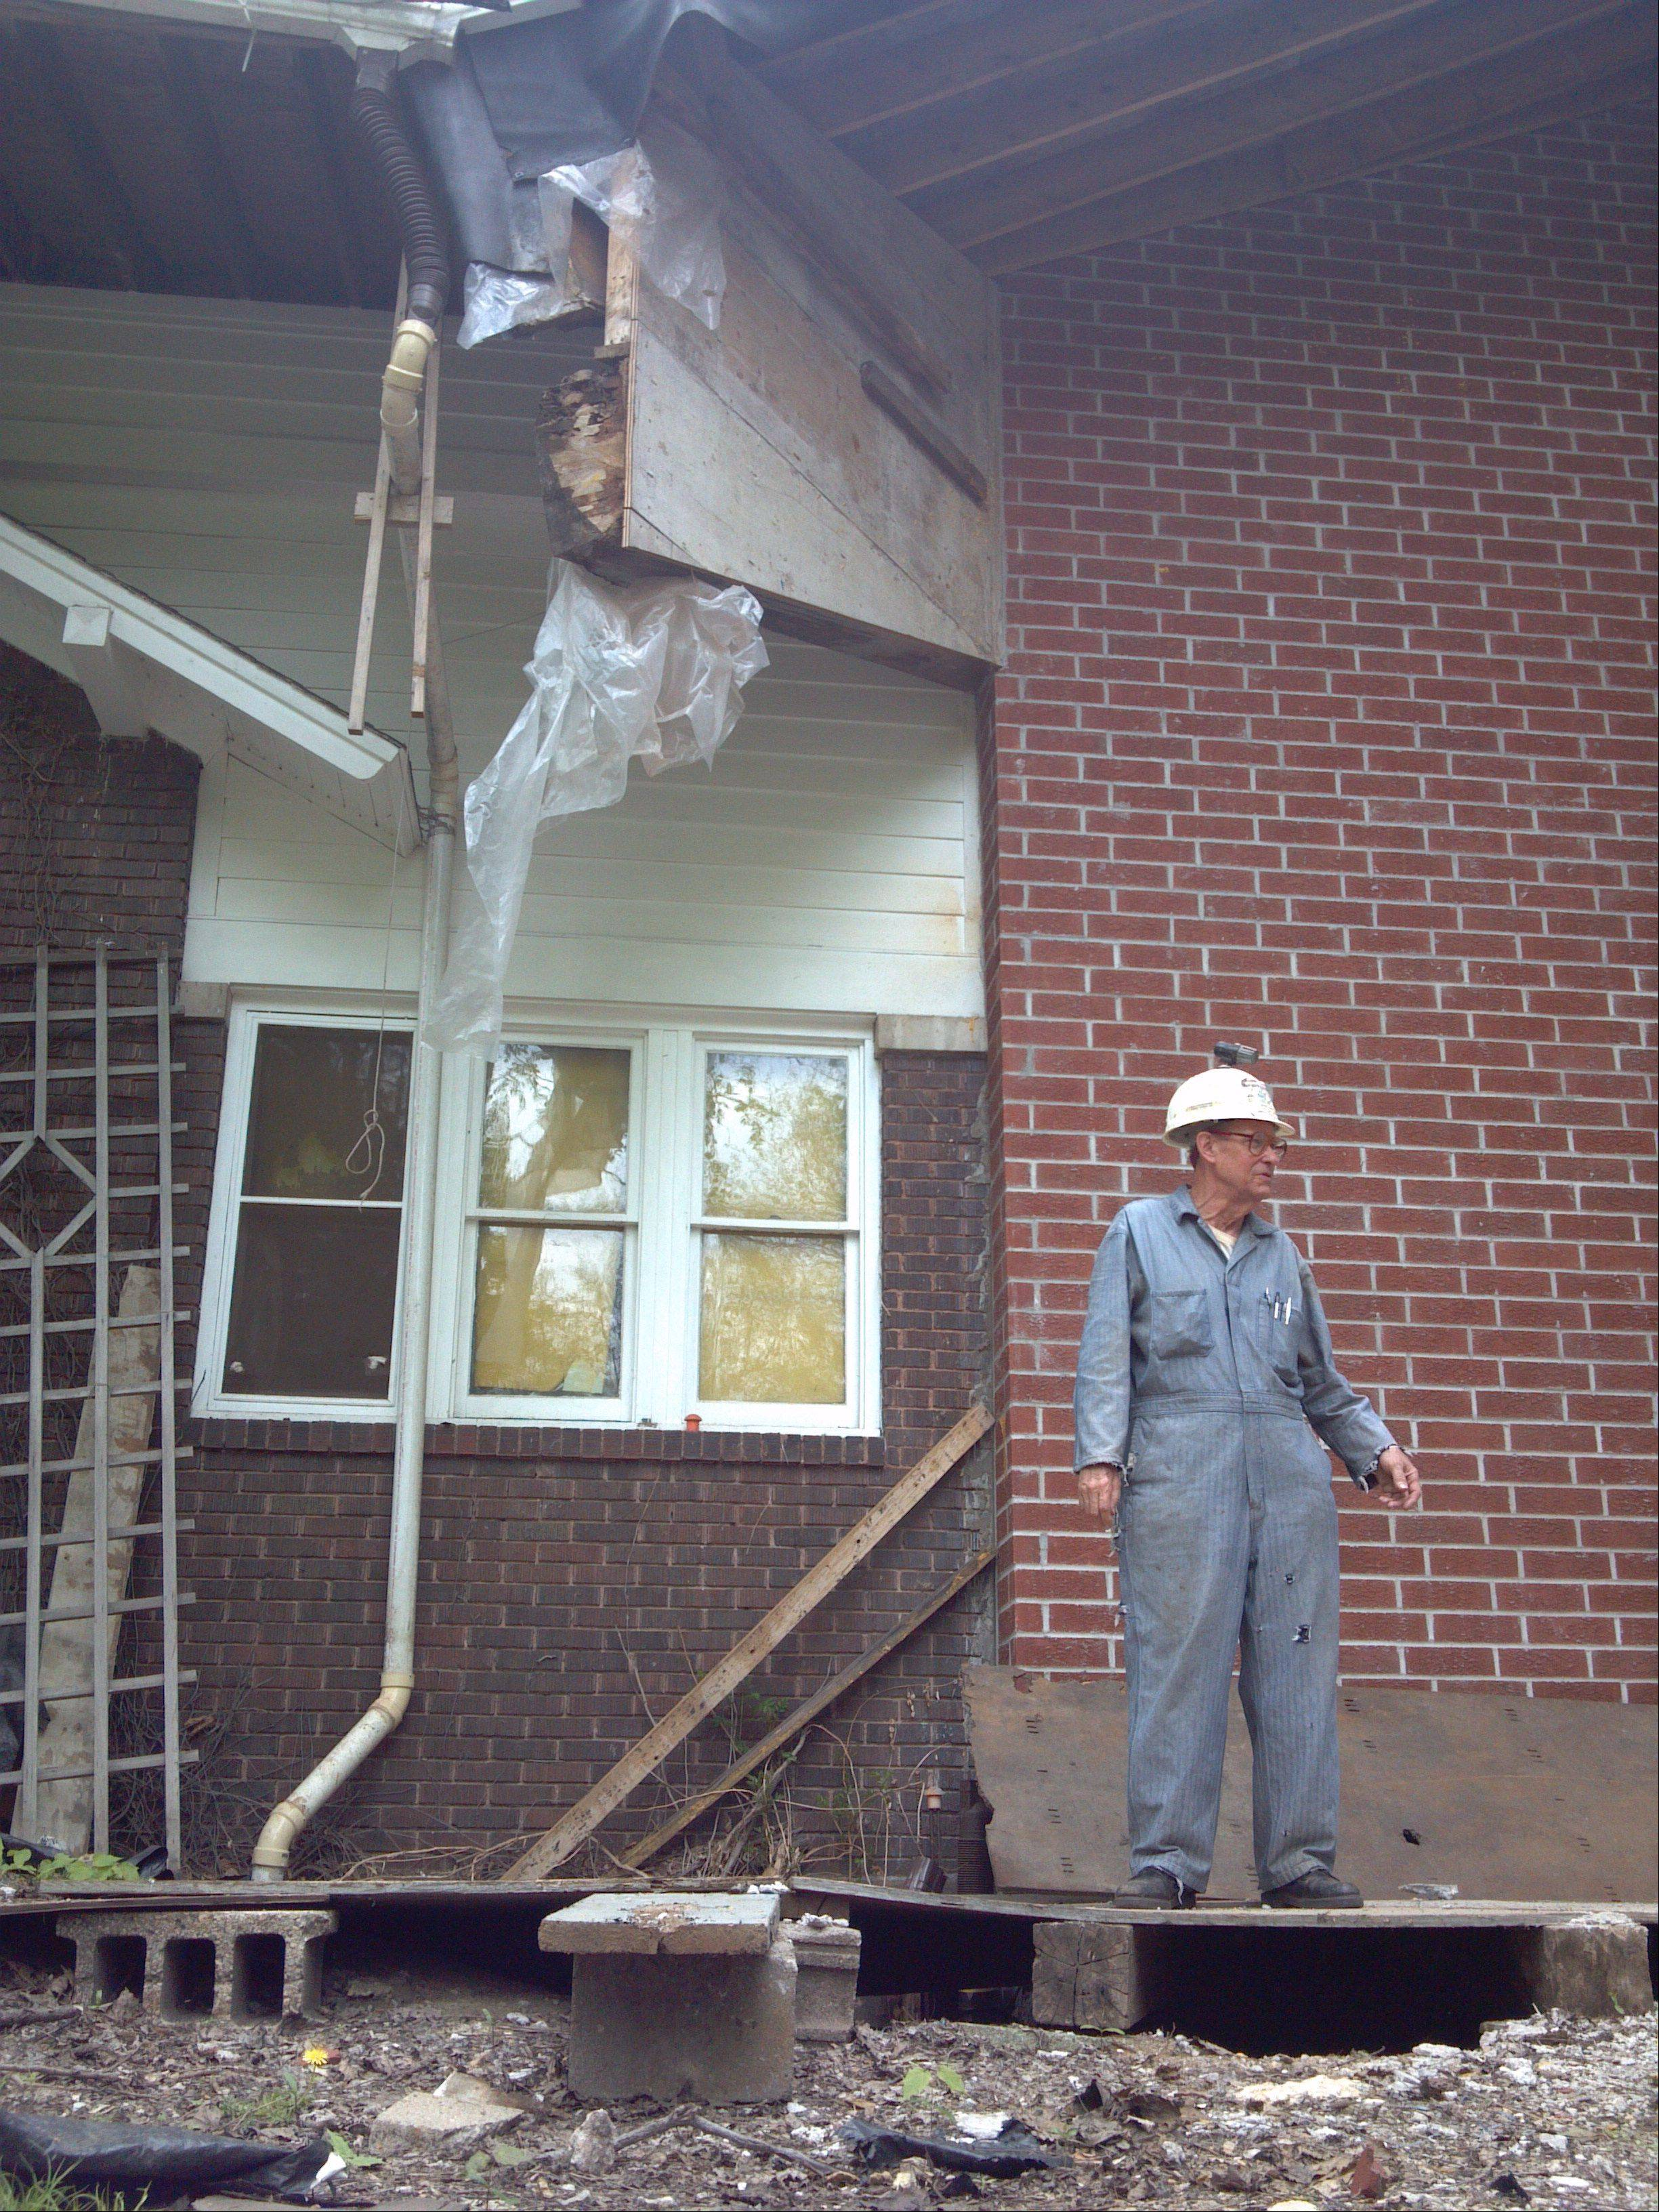 Cliff McIlvaine, who was sued by the city of St. Charles in an effort to get him to finish a project that he first pulled a permit for in 1975, stands on a landing between his original home to the left and new, super-insulated addition on the right, which he hopes to turn into a museum for his and his father's inventions, along with city memorabilia.